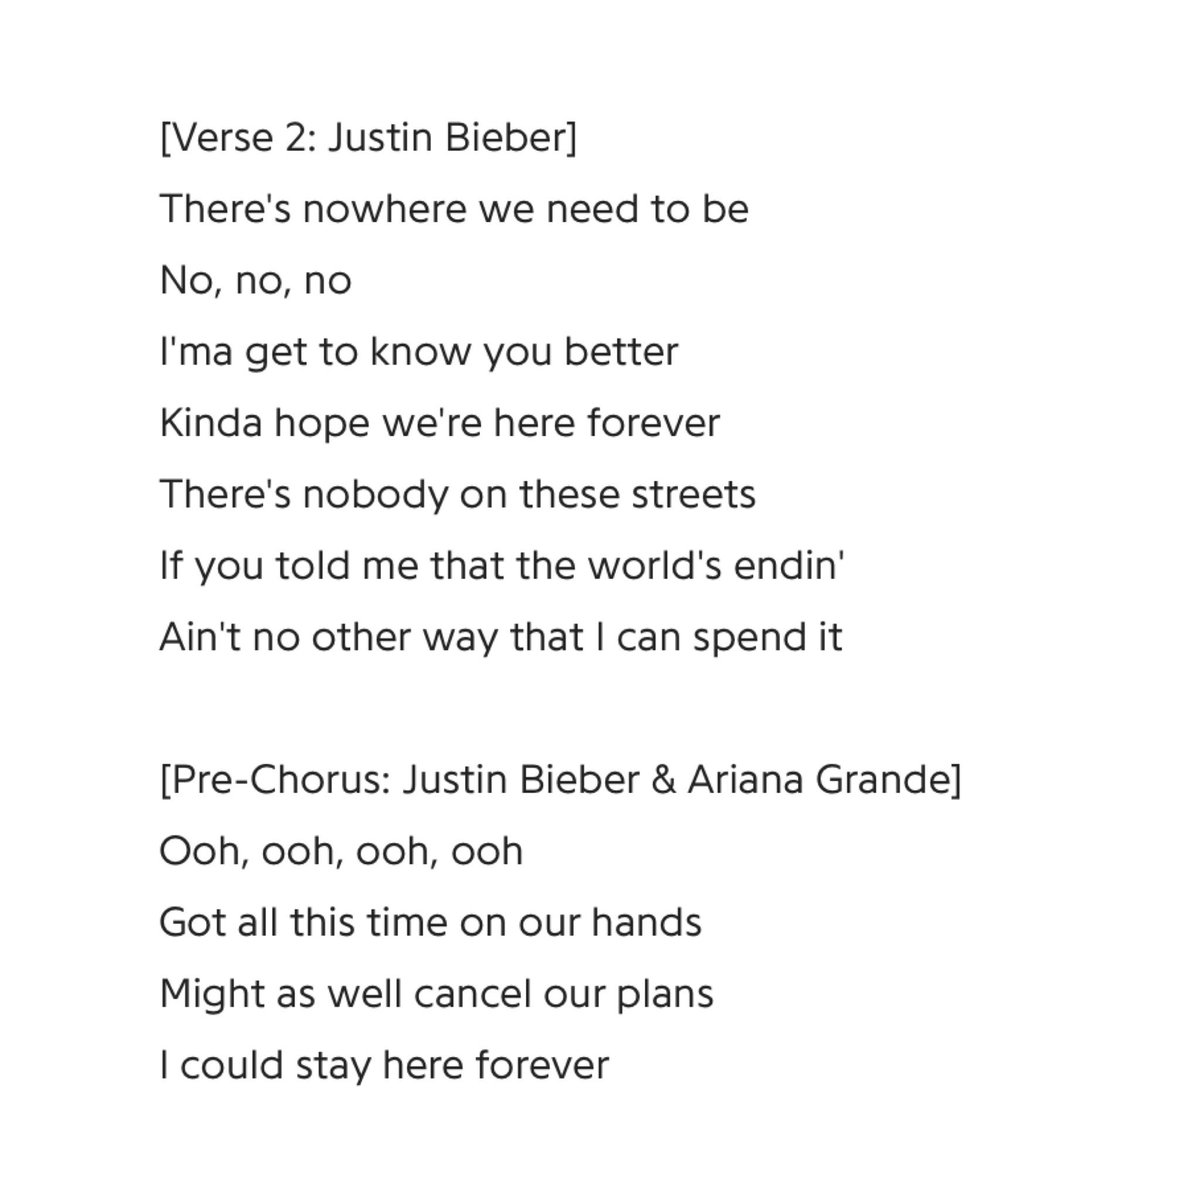 Justin Bieber Crew On Twitter Check Out The Lyrics To Stuck With U By Justin Bieber And Ariana Grande Mm, must blow your mind to see a. justin bieber crew on twitter check